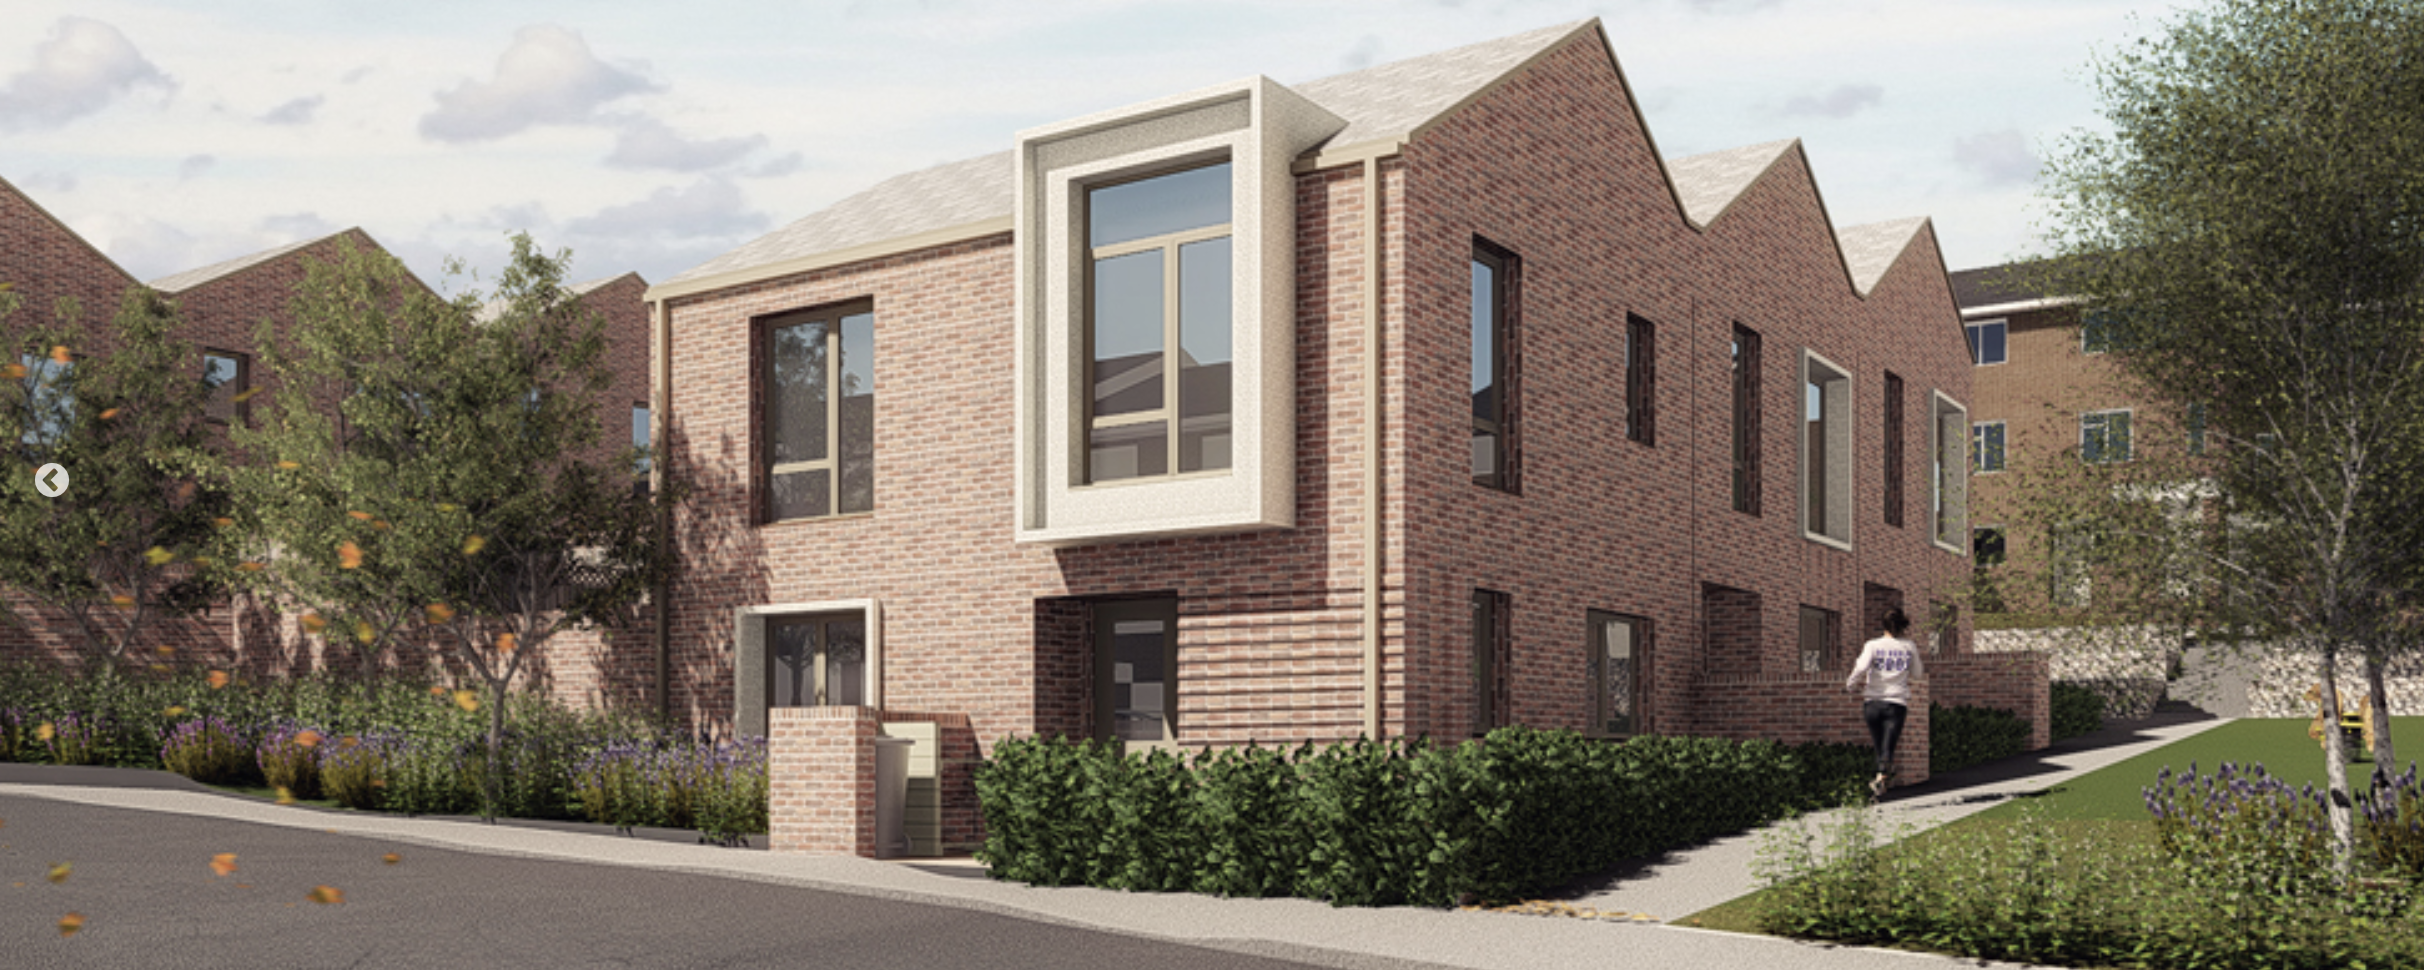 Ravensdale and Rushden scheme by HTA Design